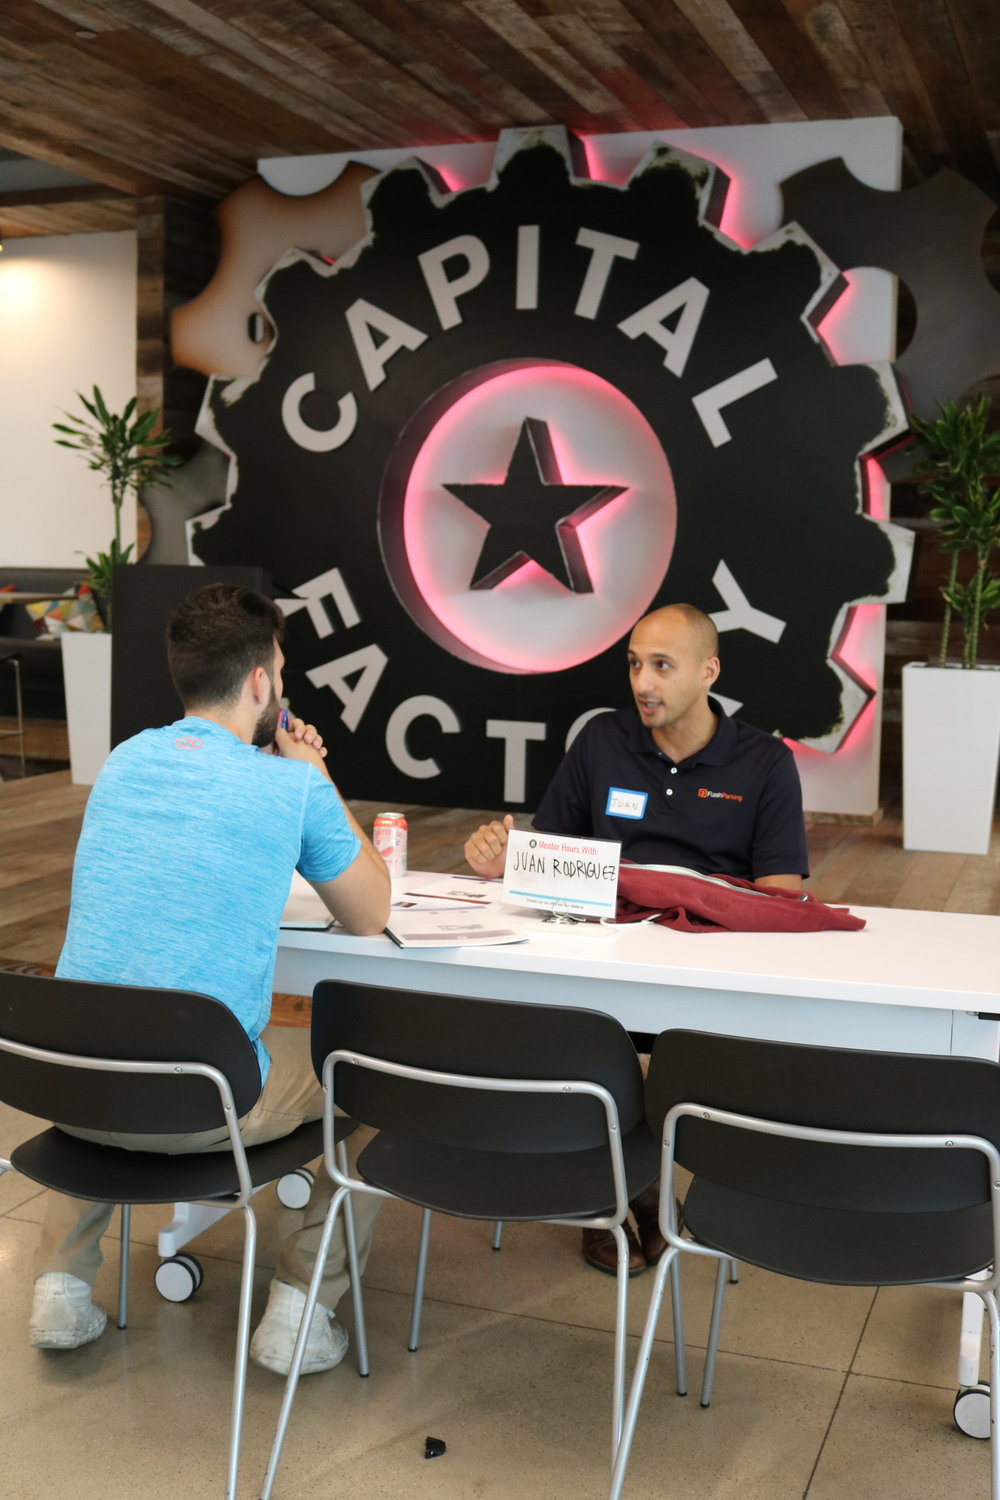 Juan Rodriguez mentors a teen entrepreneur during EPIC office Hours